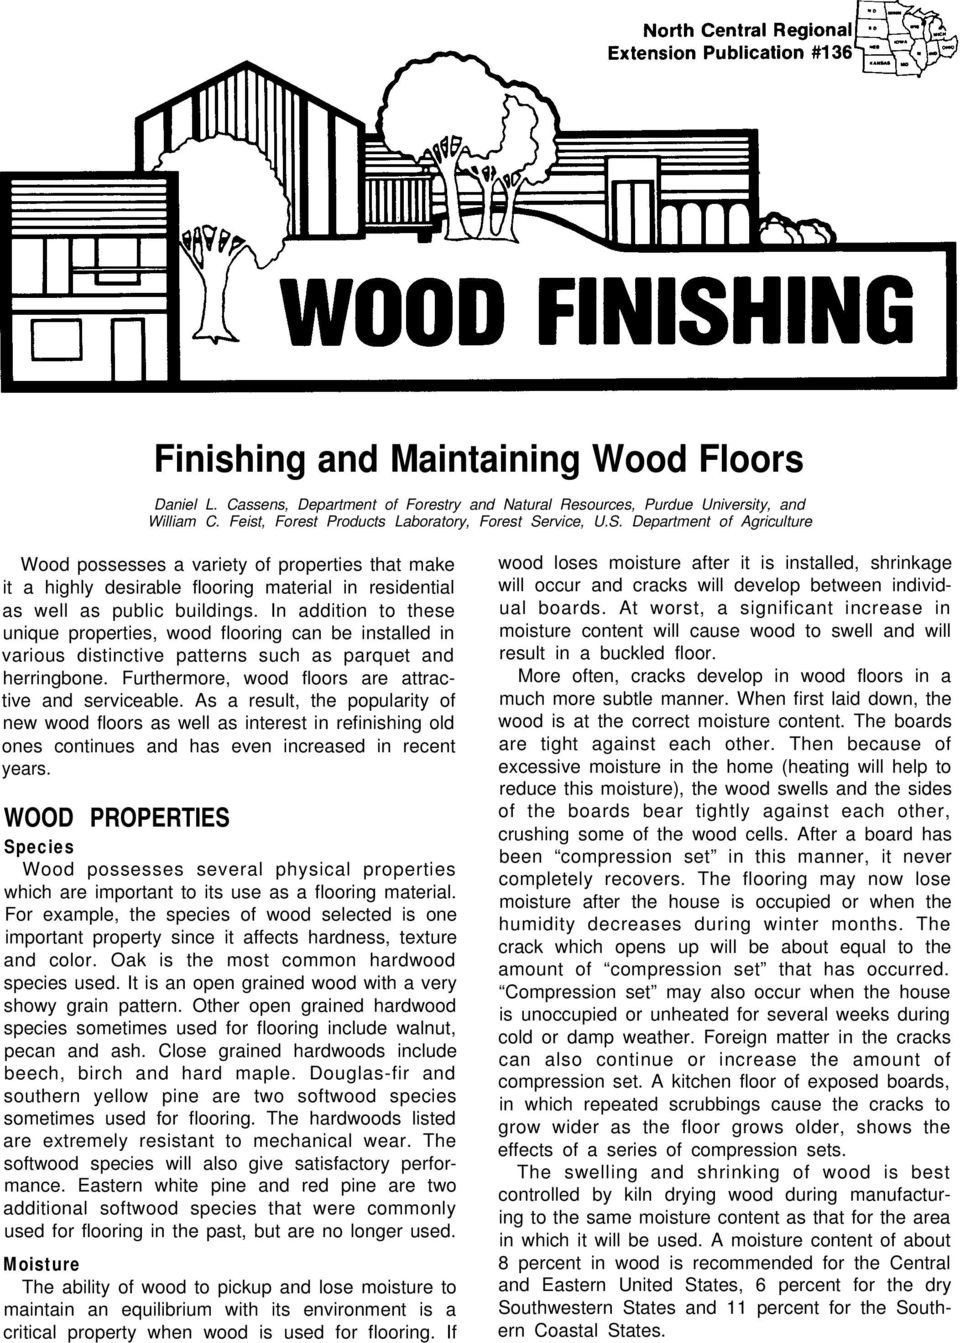 hardwood floor refinishing colorado springs co of finishing and maintaining wood floors pdf with regard to in addition to these unique properties wood flooring can be installed in various distinctive patterns